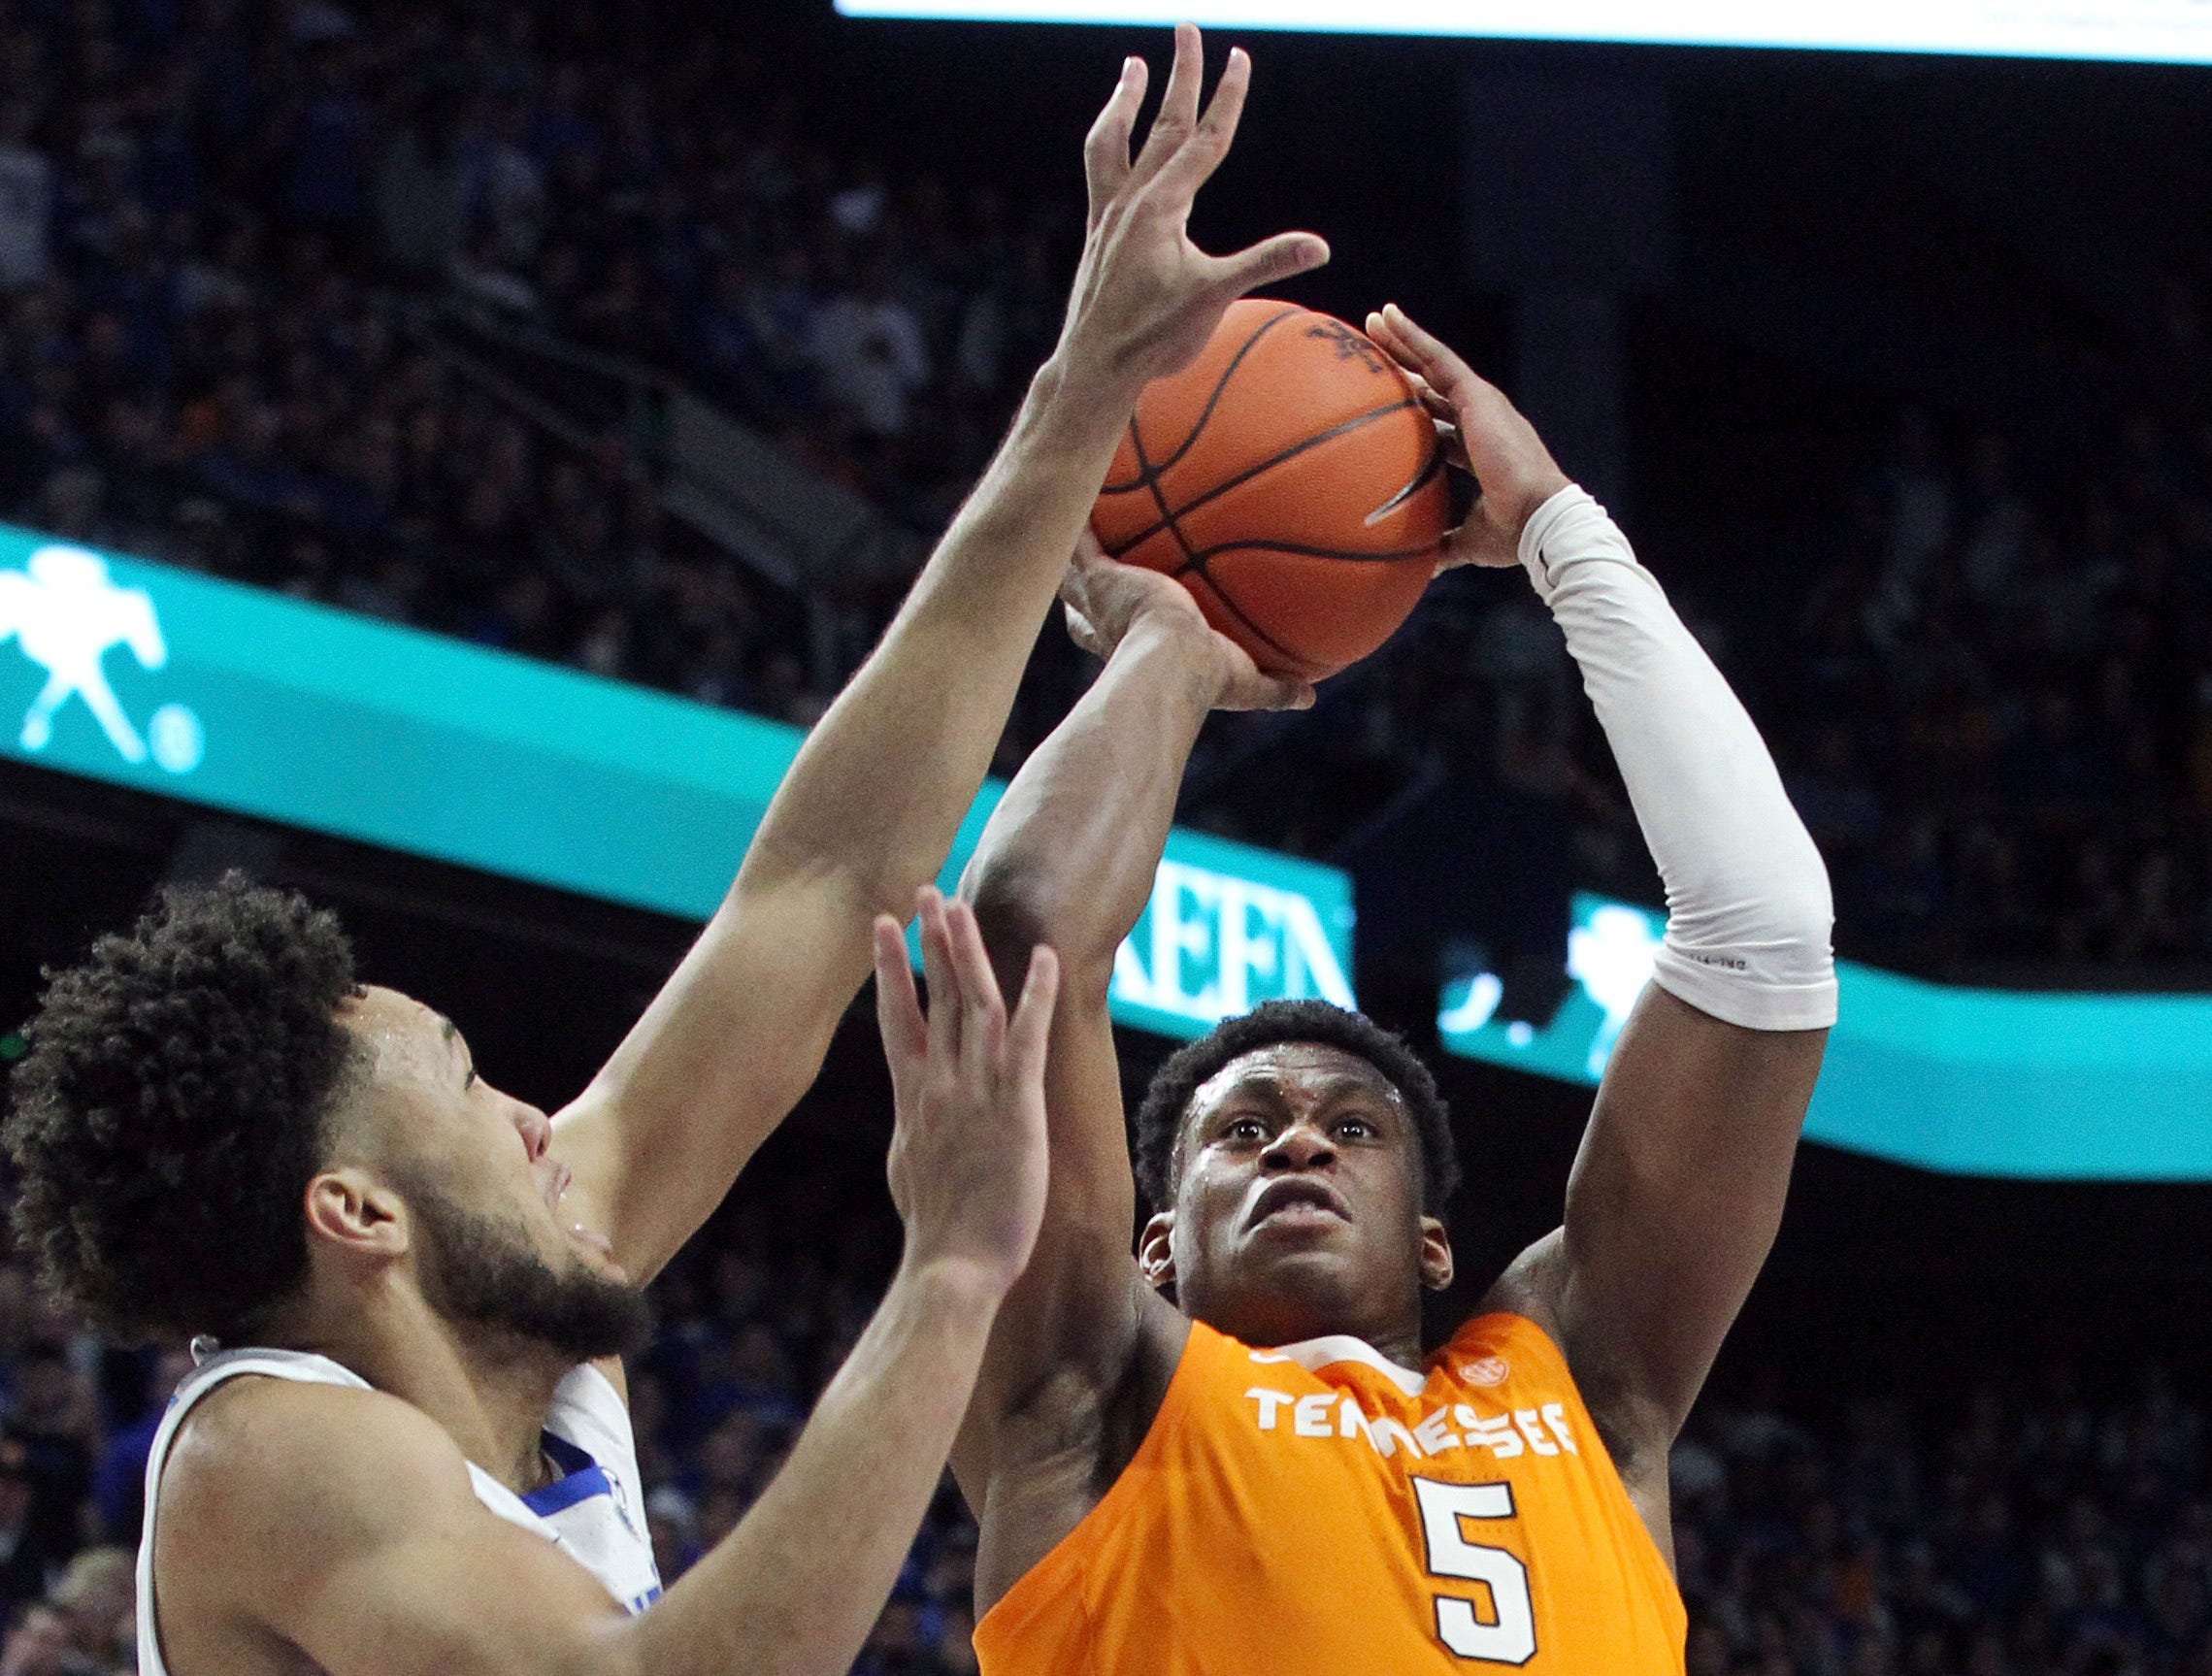 Tennessee's Admiral Schofield (5) shoots while pressured by Kentucky's EJ Montgomery during the second half of an NCAA college basketball game in Lexington, Ky., Saturday, Feb. 16, 2019. Kentucky won 86-69. (AP Photo/James Crisp)